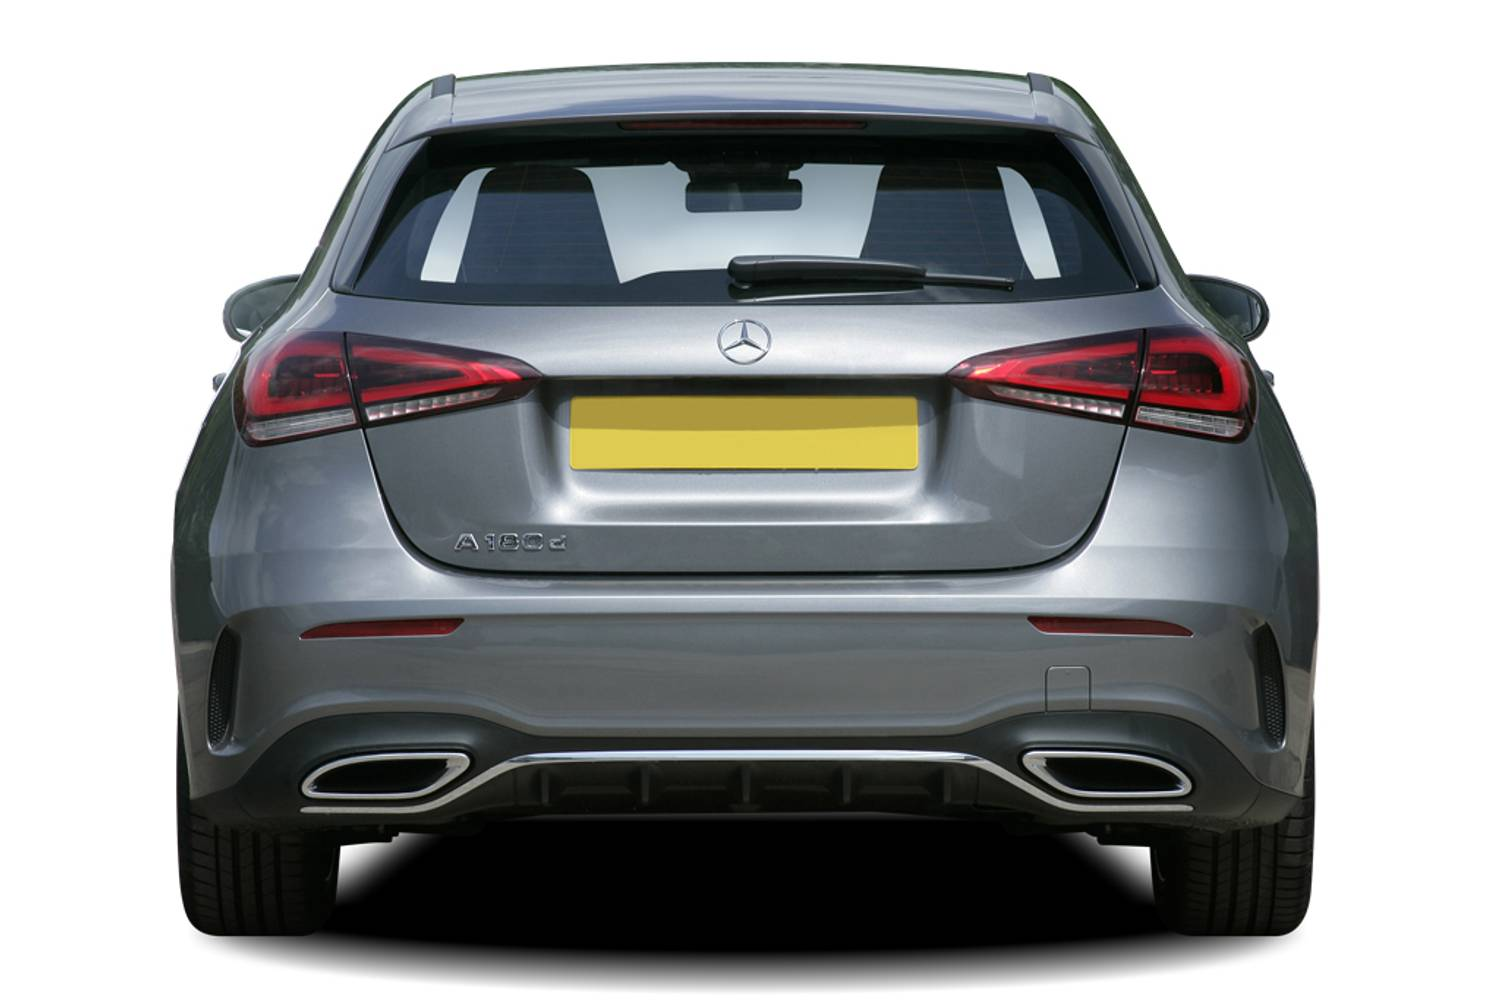 Mercedes-Benz A Class Hatchback 5dr Rear